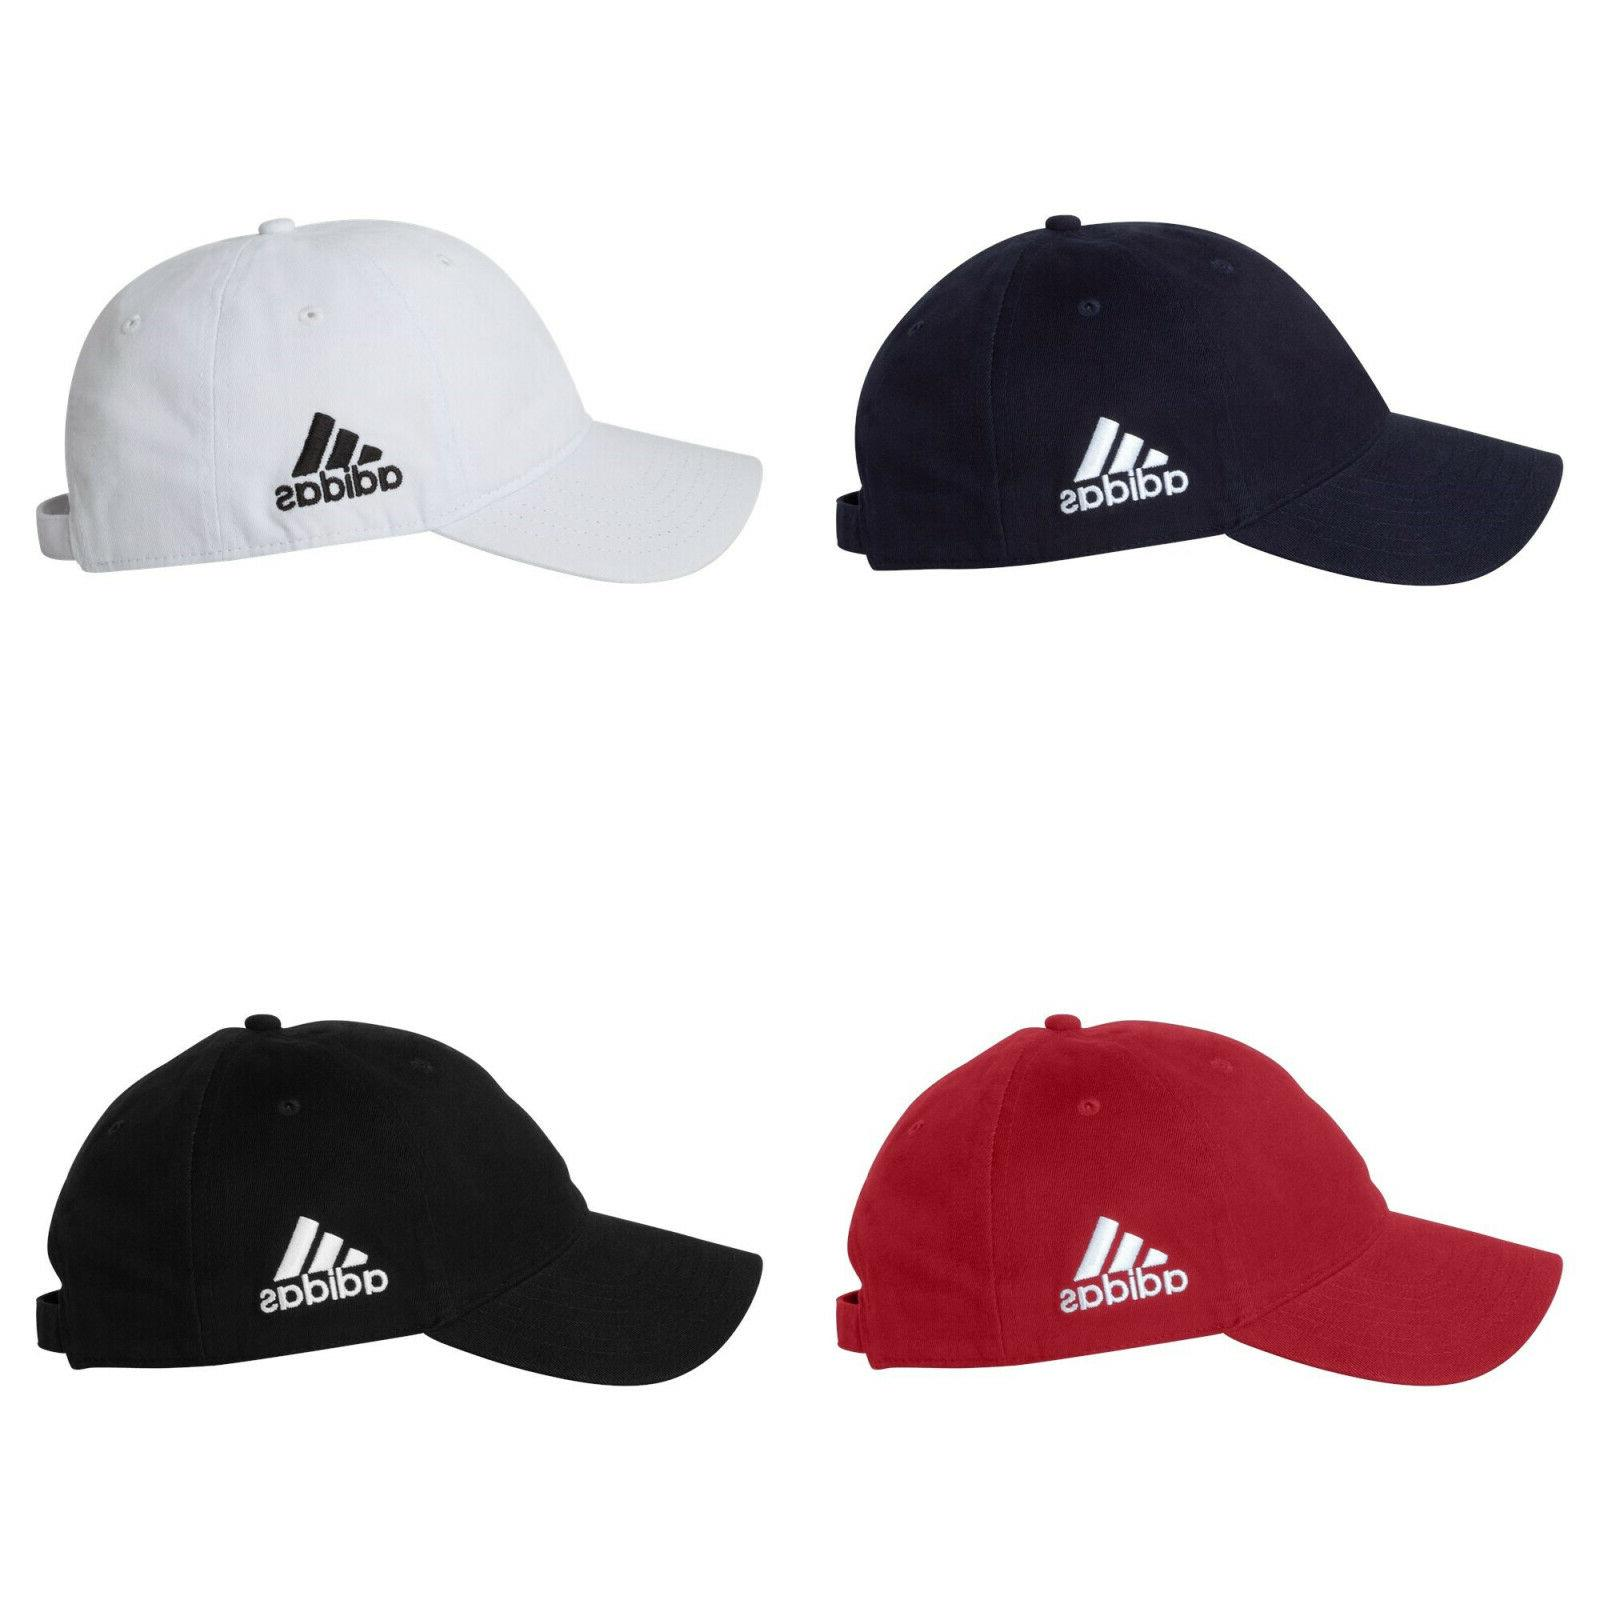 a12 core performance relaxed baseball golf cap